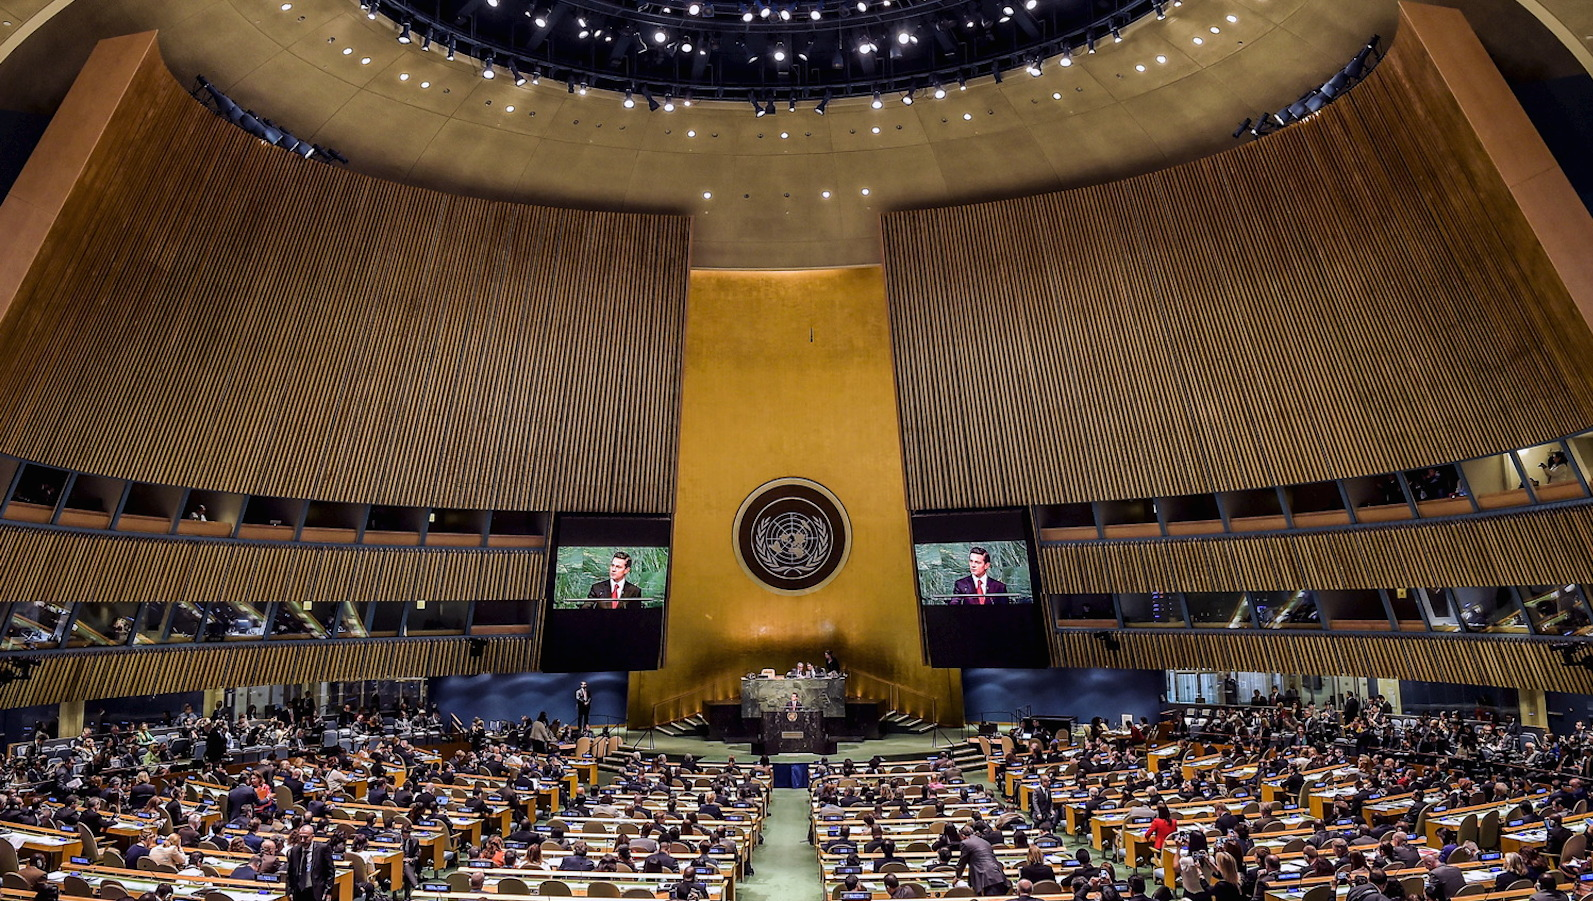 Mexican President Enrique Pena Nieto addresses the audience during a special session on global strategy in the war on drugs at the United Nations General Assembly in New York